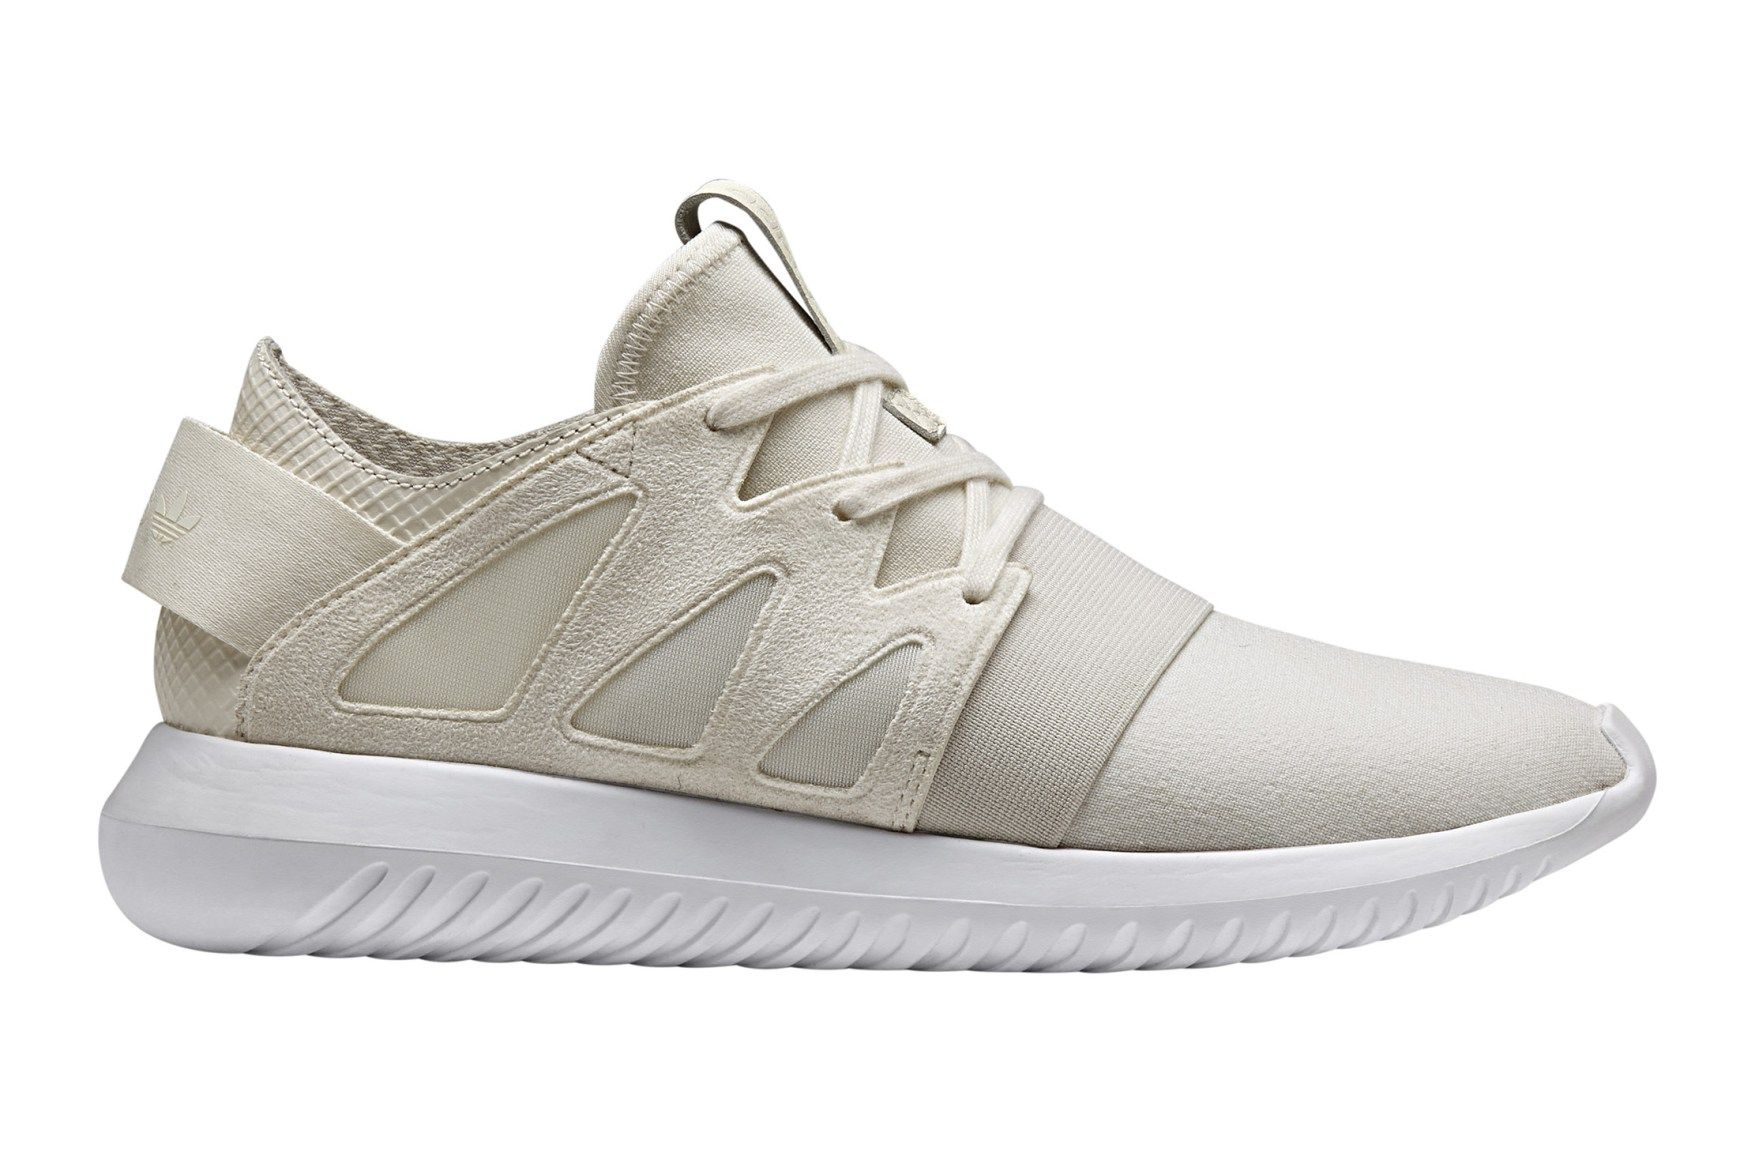 Adidas Tubular Viral Men